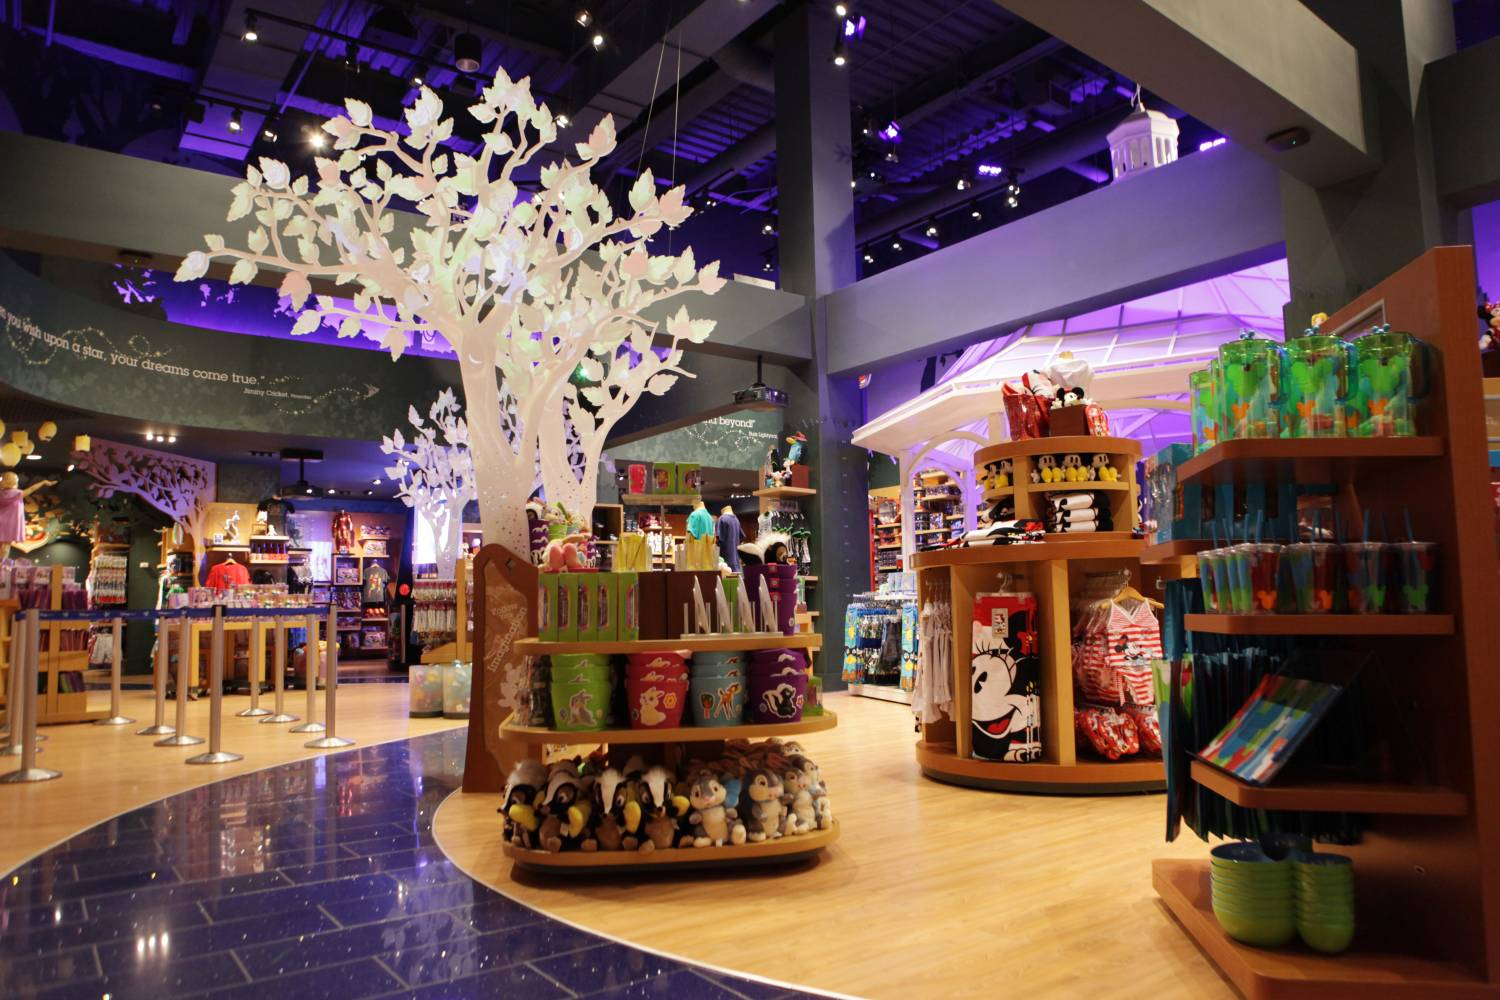 Disney Store Times Square, interior